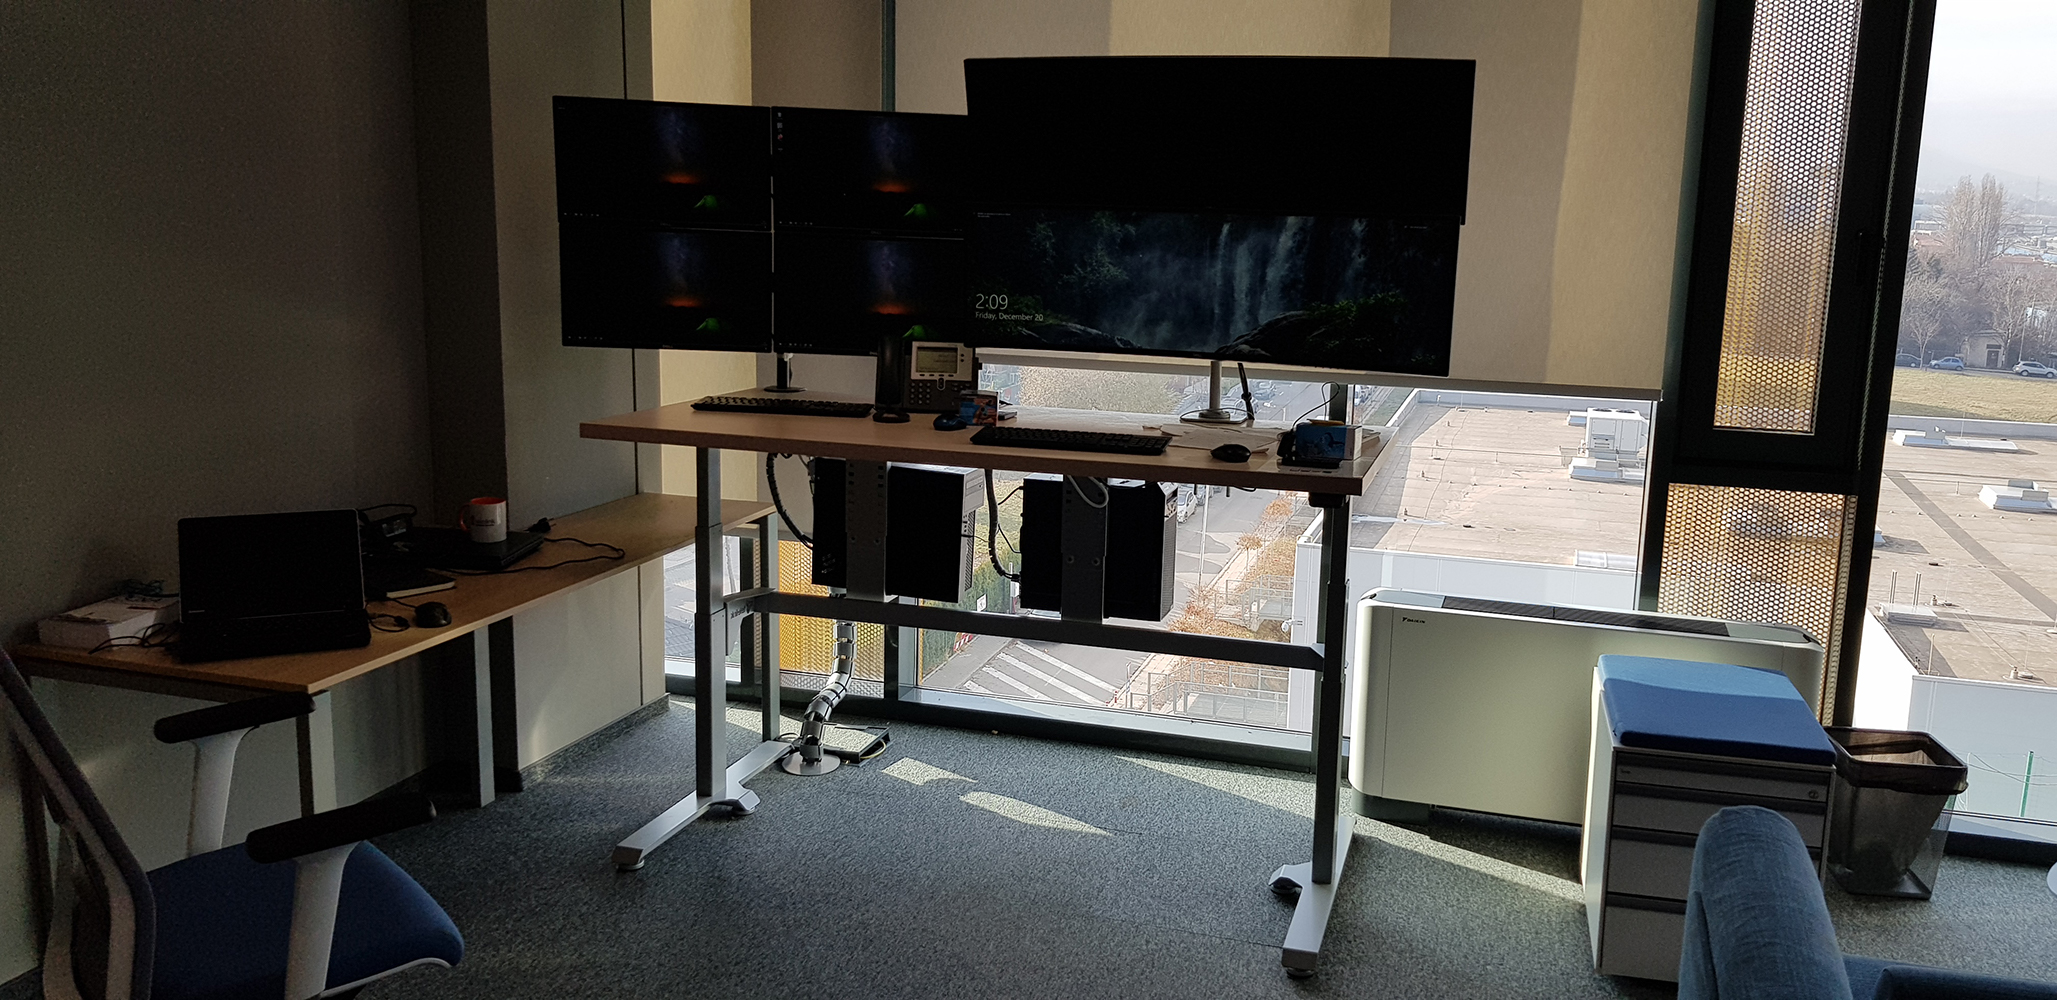 Height adjustable standing desk BulDesk Pro Plus with 6 monitors in Telelink office